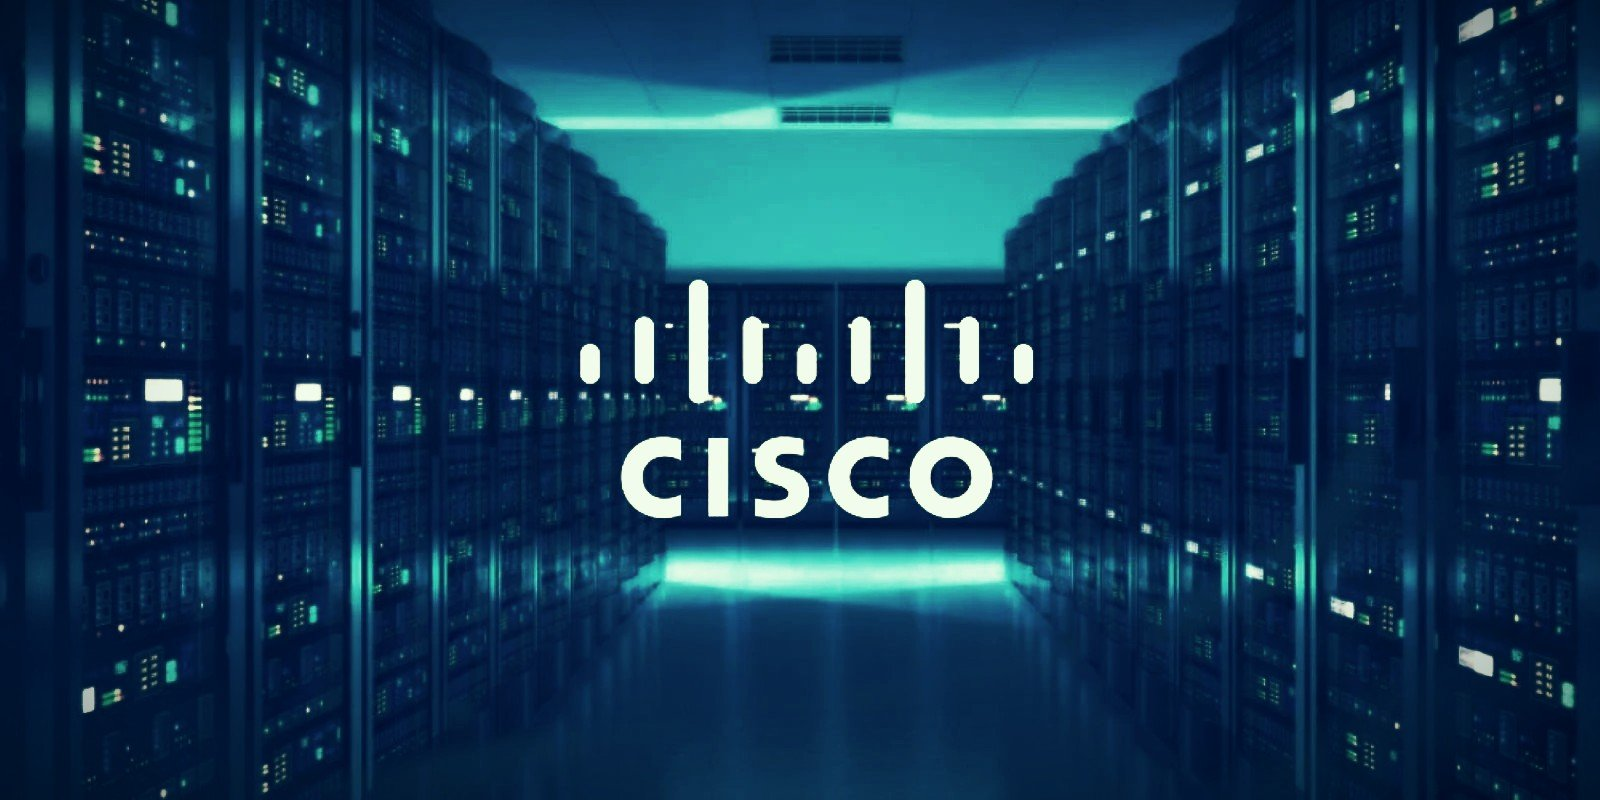 Ex-Cisco engineer who nuked 16k WebEx accounts goes to prison